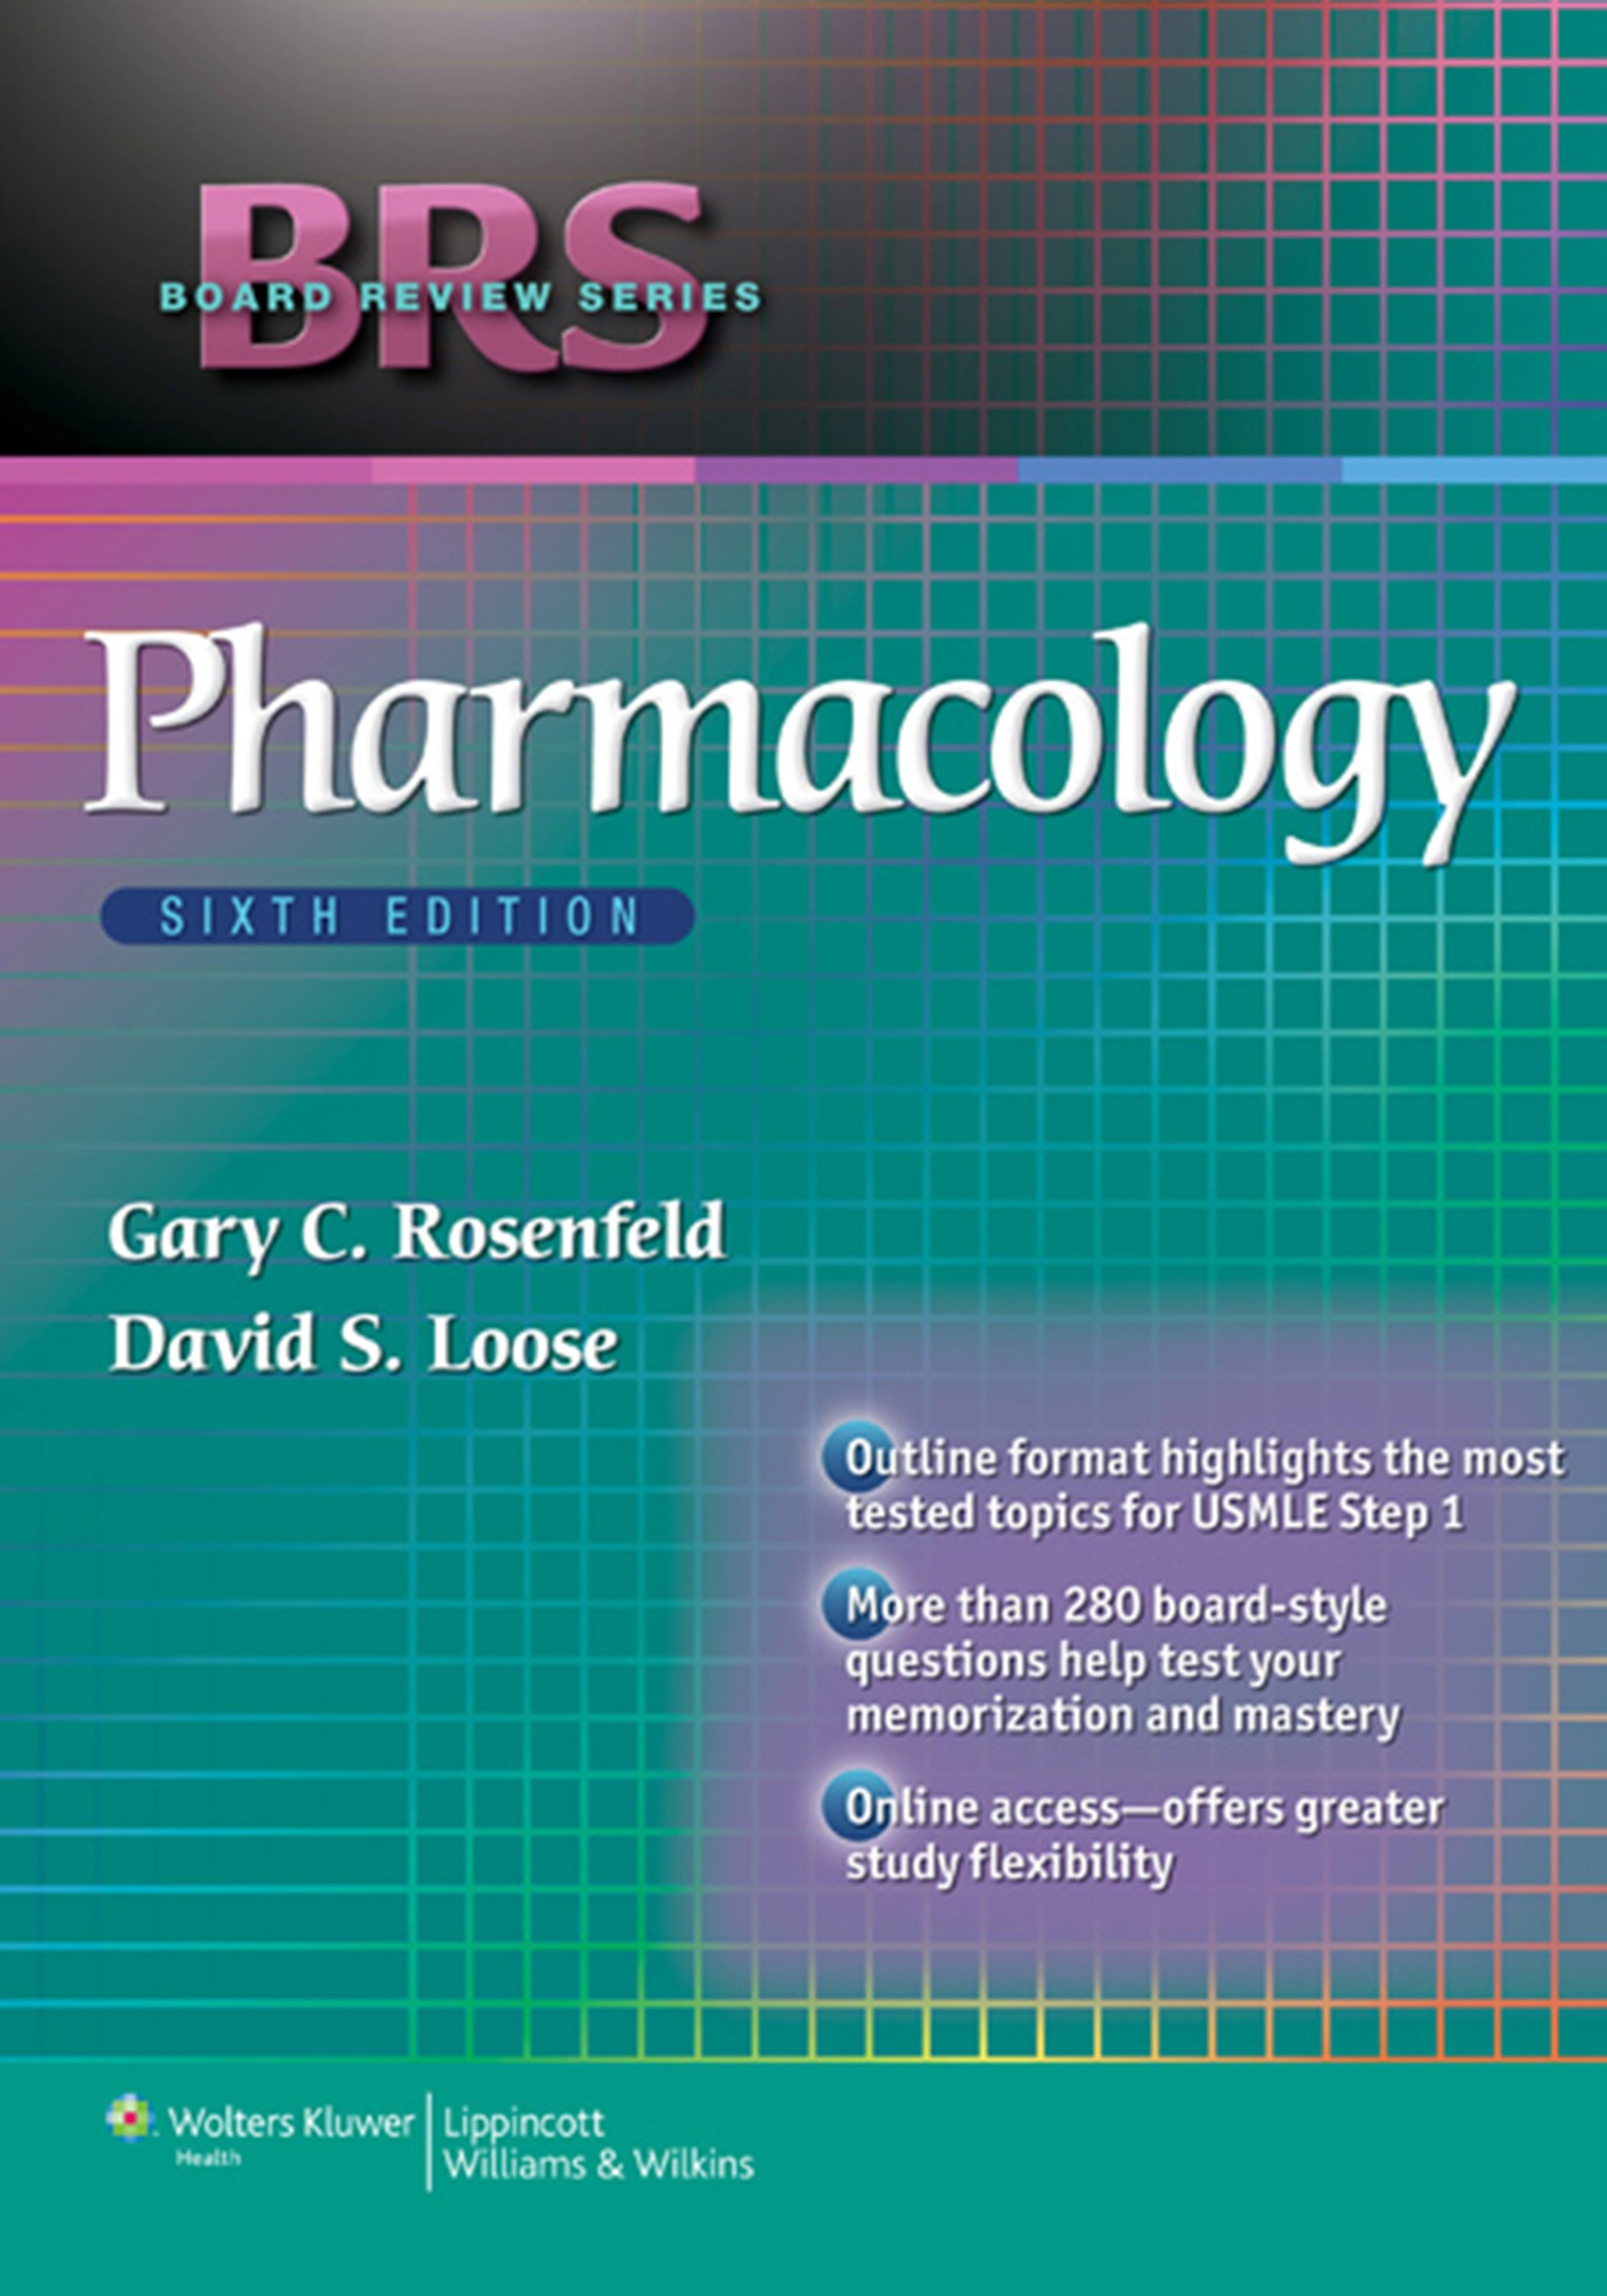 BRS Pharmacology 6th Edition PDF | Pharmacology, Medical and Medical ...